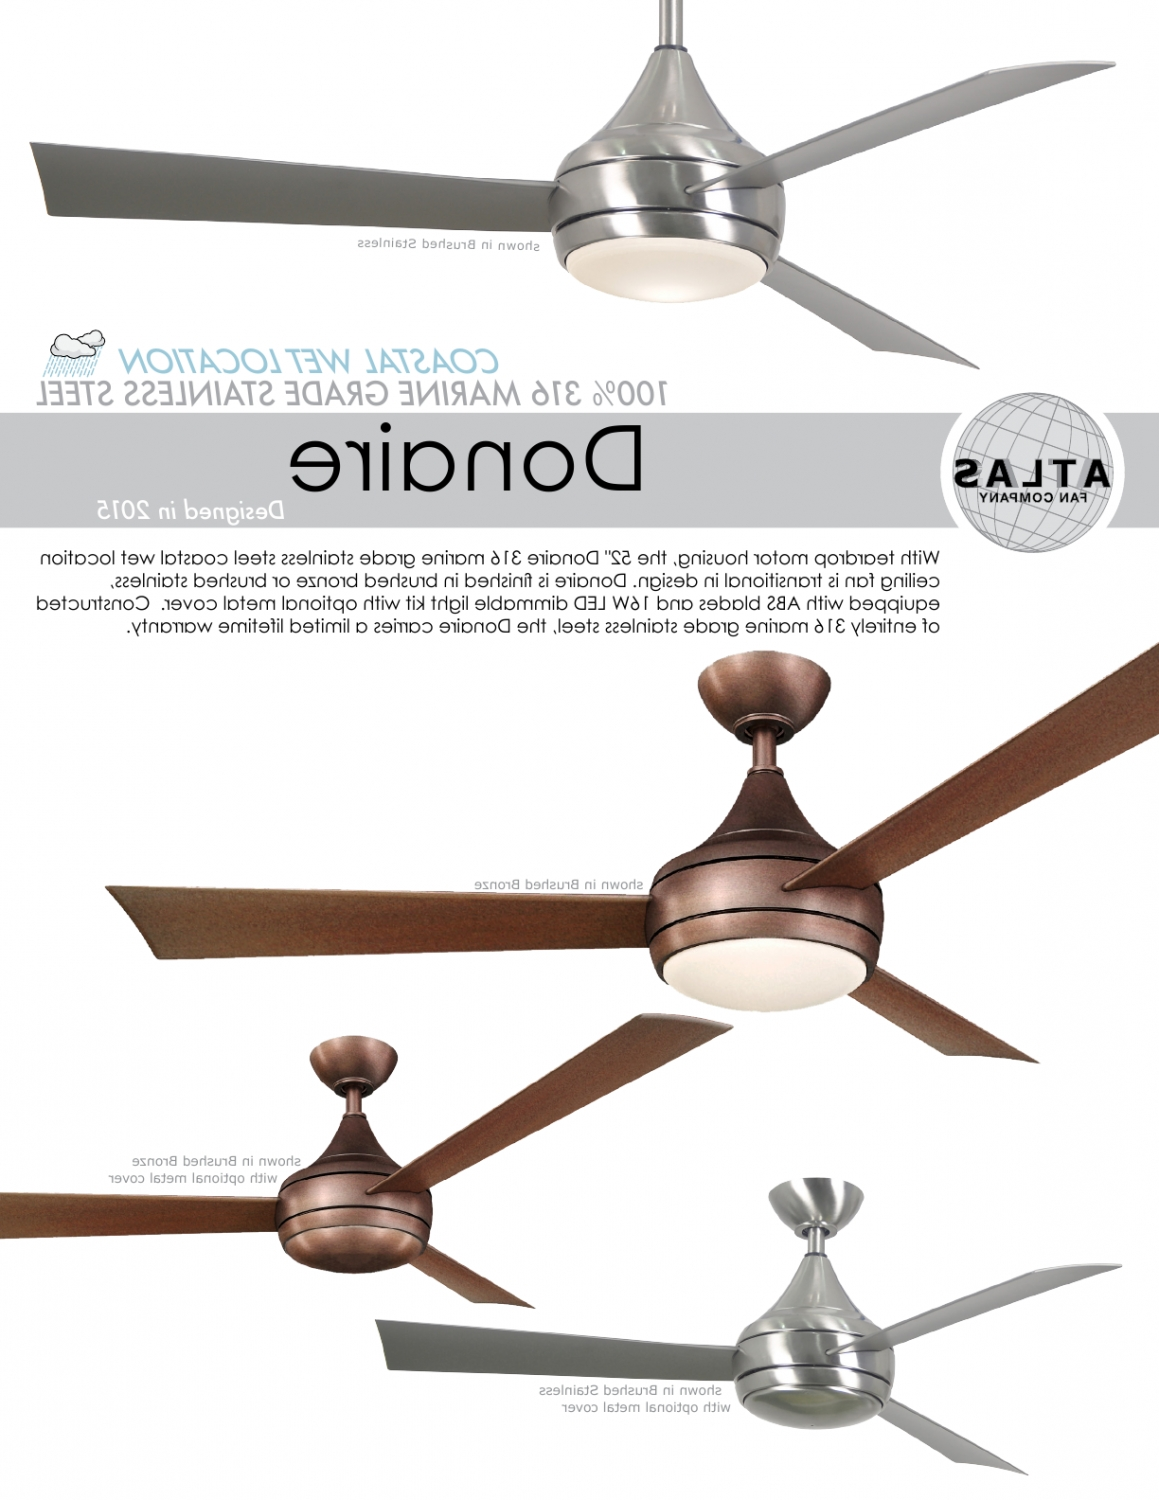 Most Recent Donaire Ceiling Fan For Balcony Terrace Verandah Outdoor Spaces With Regard To Stainless Steel Outdoor Ceiling Fans With Light (Gallery 19 of 20)